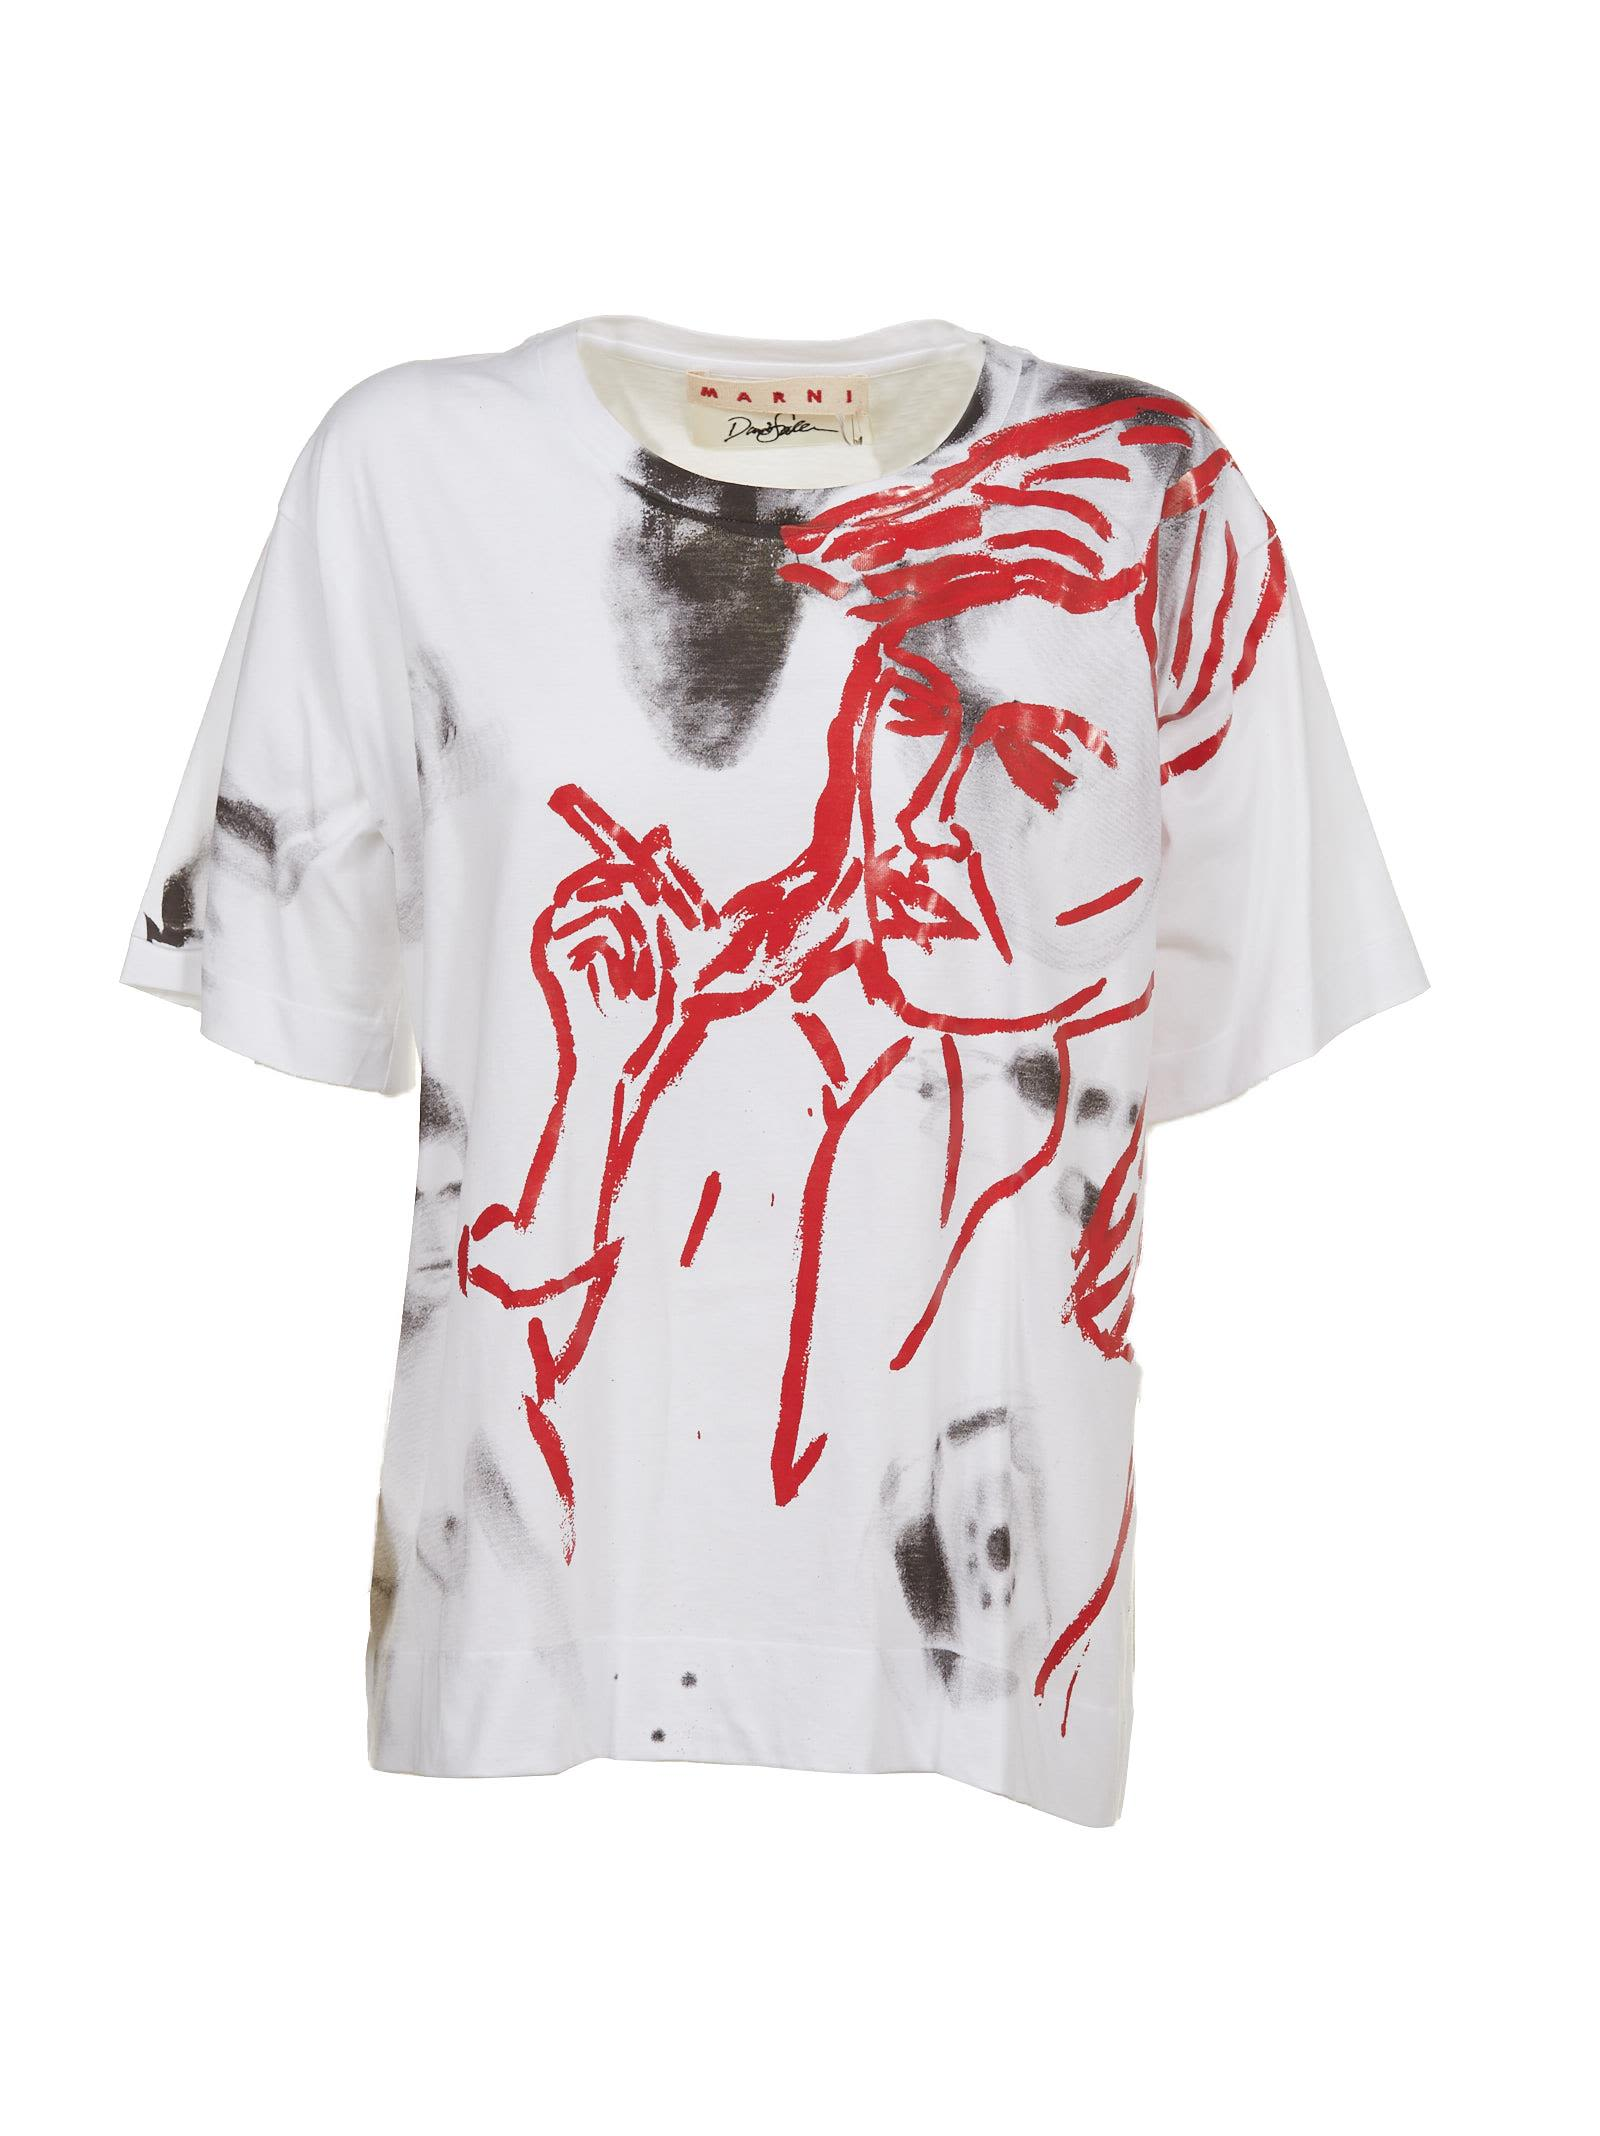 Marni painted T-shirt Cheap Sale Brand New Unisex Buy Cheap Best Wholesale Cheap Sale Footlocker Finishline Cheap With Credit Card FvmhA